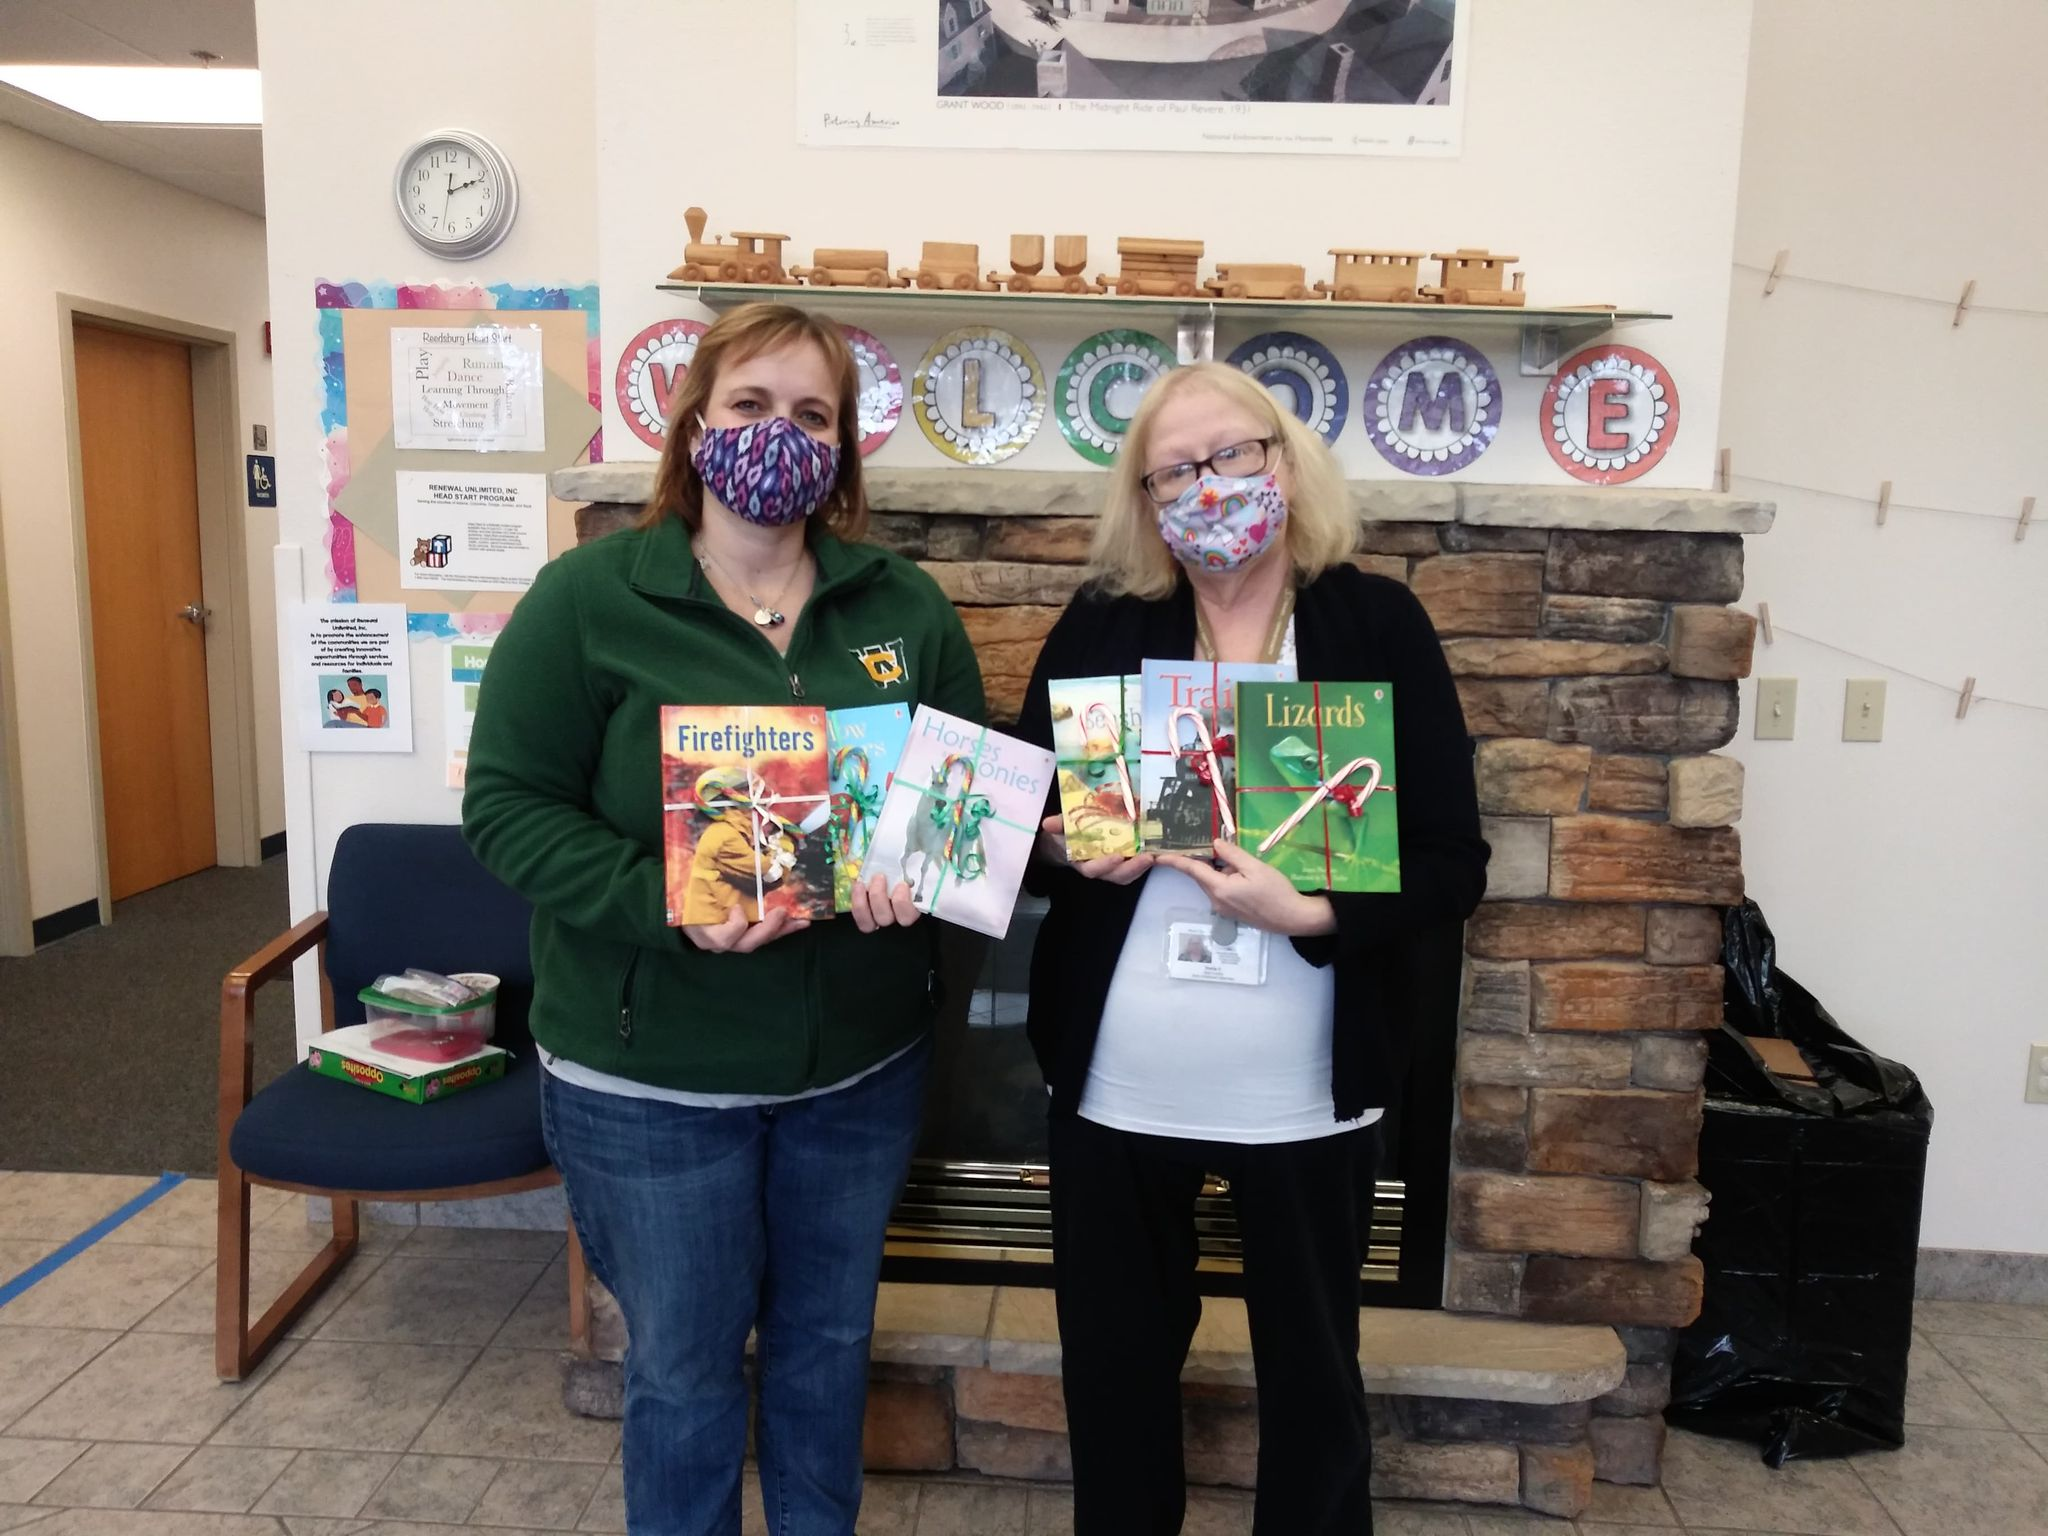 Keeley Bauer, an independent consultant with Usborne Books & More, donated books to Reedsburg Headstart Programs. In addition, residents gave money to go toward the purchase of books. Thanks to the donations, Bauer was able to receive a matching grant of 50 percent from the company. Seen here are Bauer and Sheila Pickel, early childhood supervisor for Sauk County Headstart Programs.